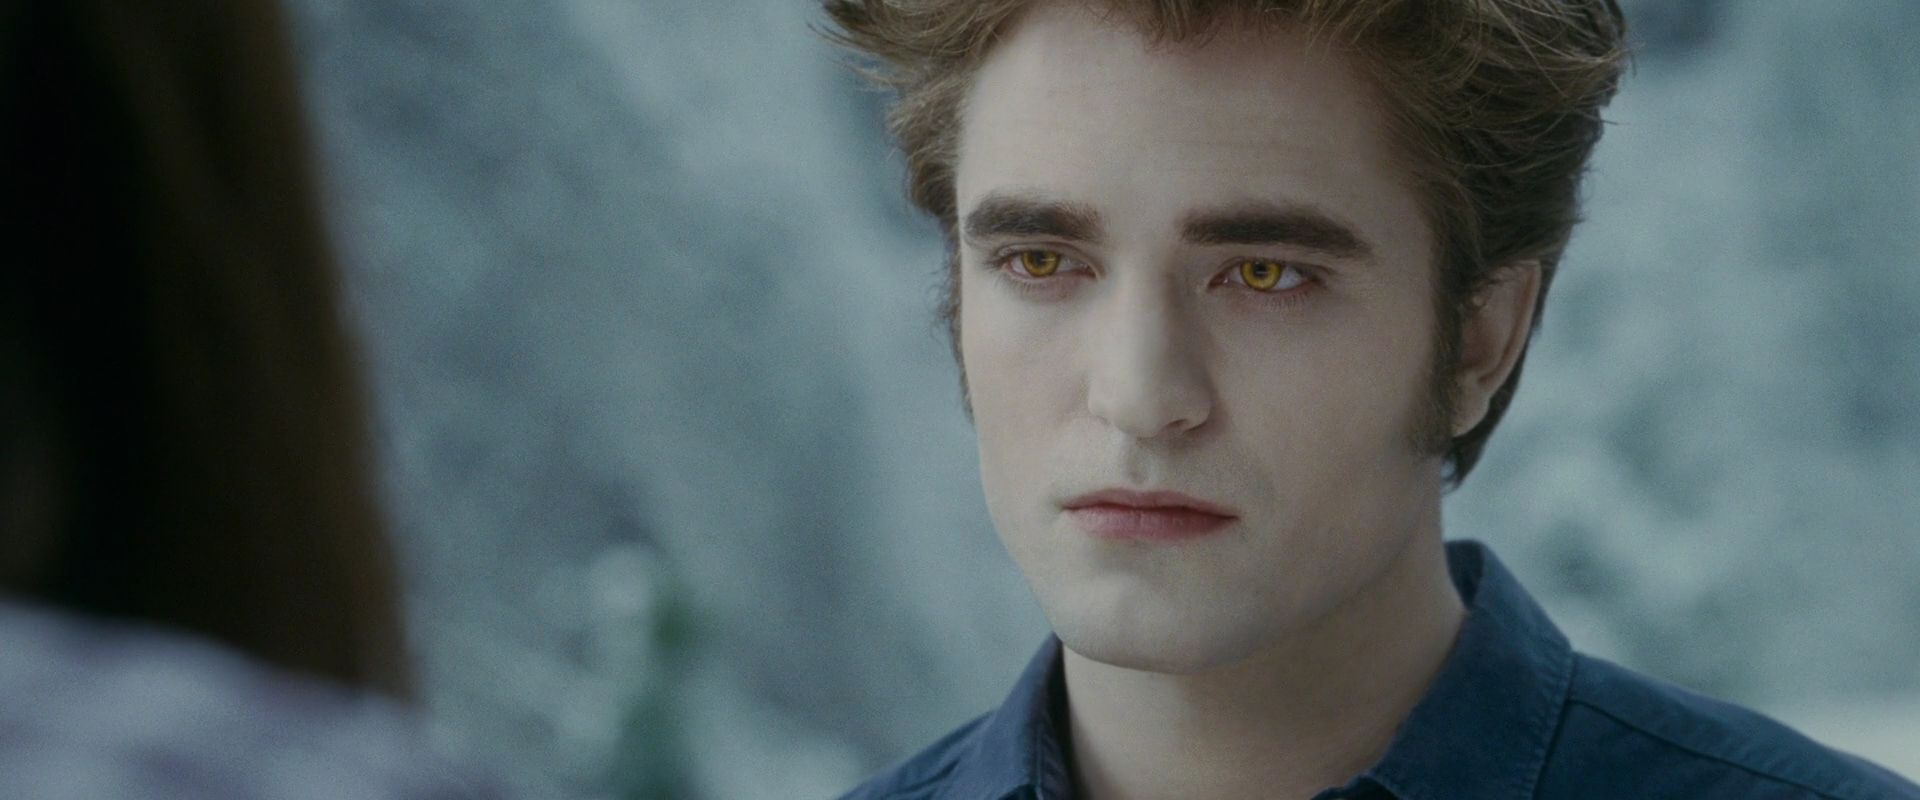 Edward Cullen - Edward Cullen Photo (18085375) - Fanpop